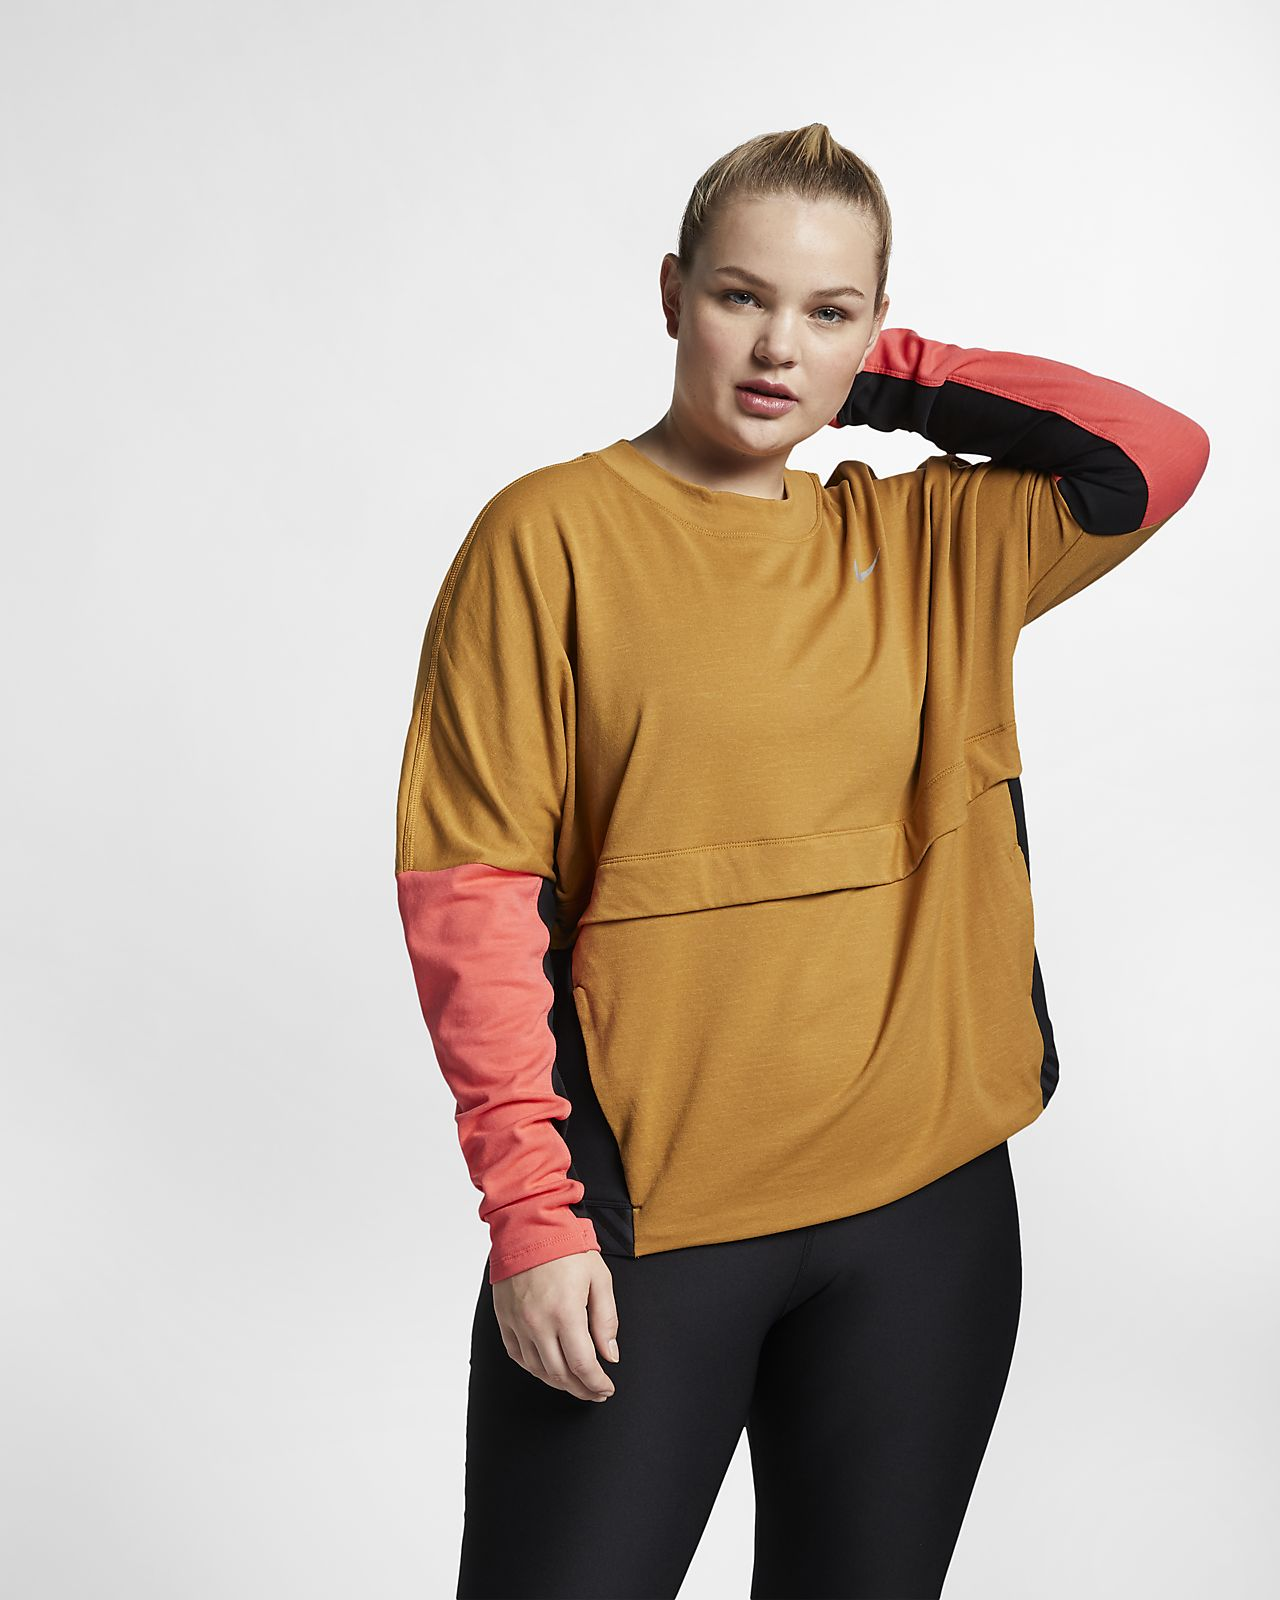 64eec877758 Nike Therma-Sphere Women s Running Top (Plus Size). Nike.com CA